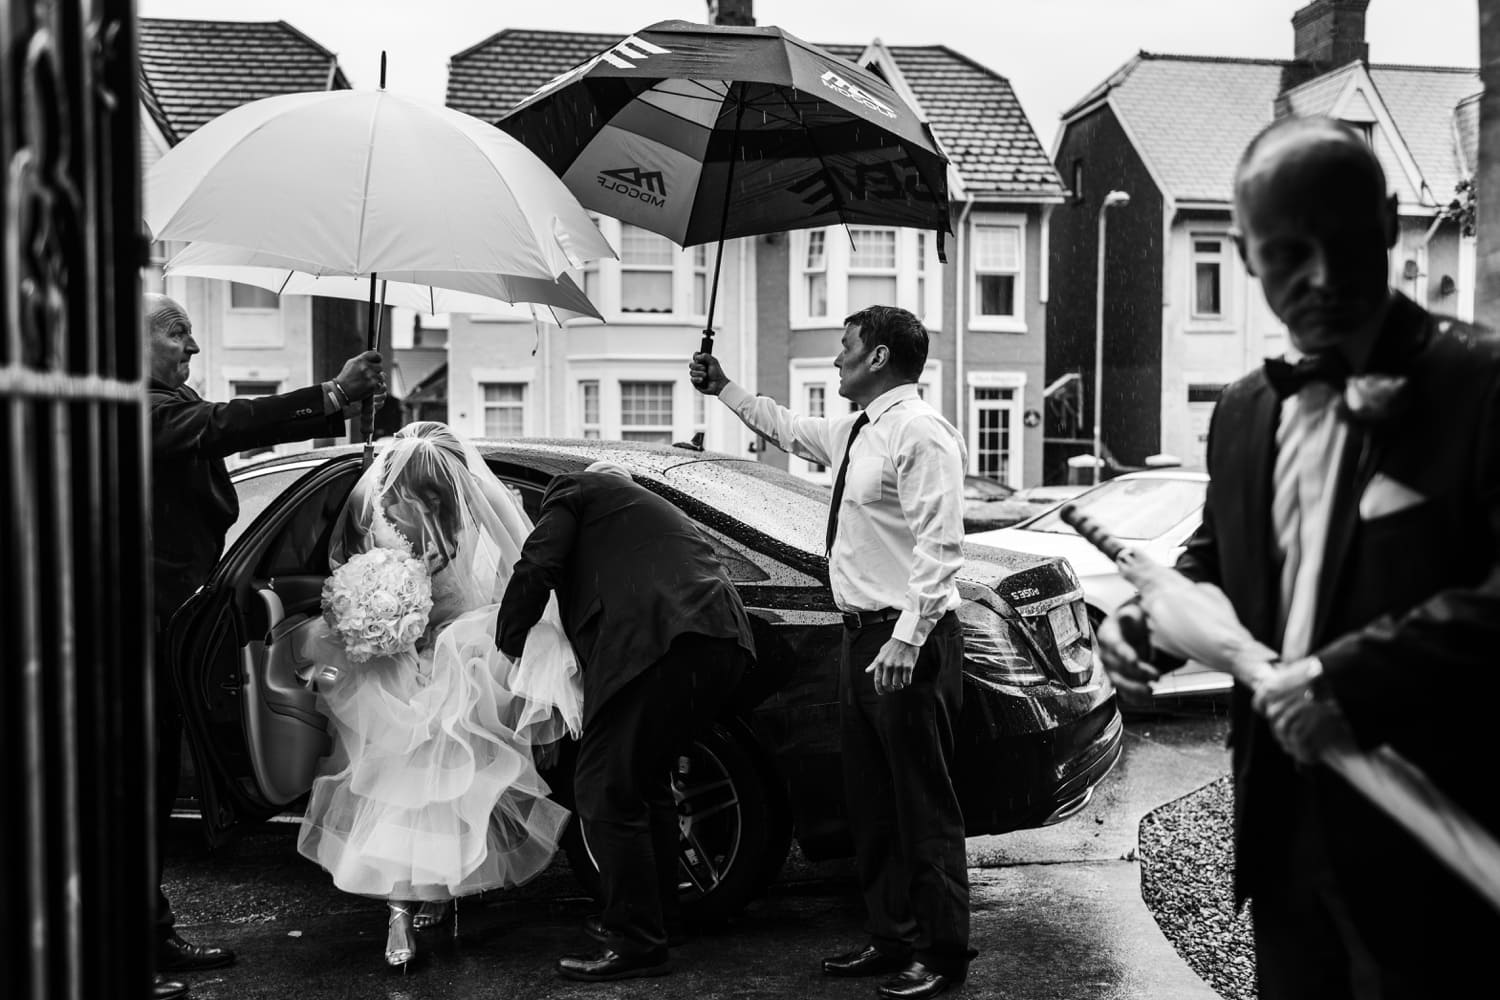 Bride arrives at church wedding in rain